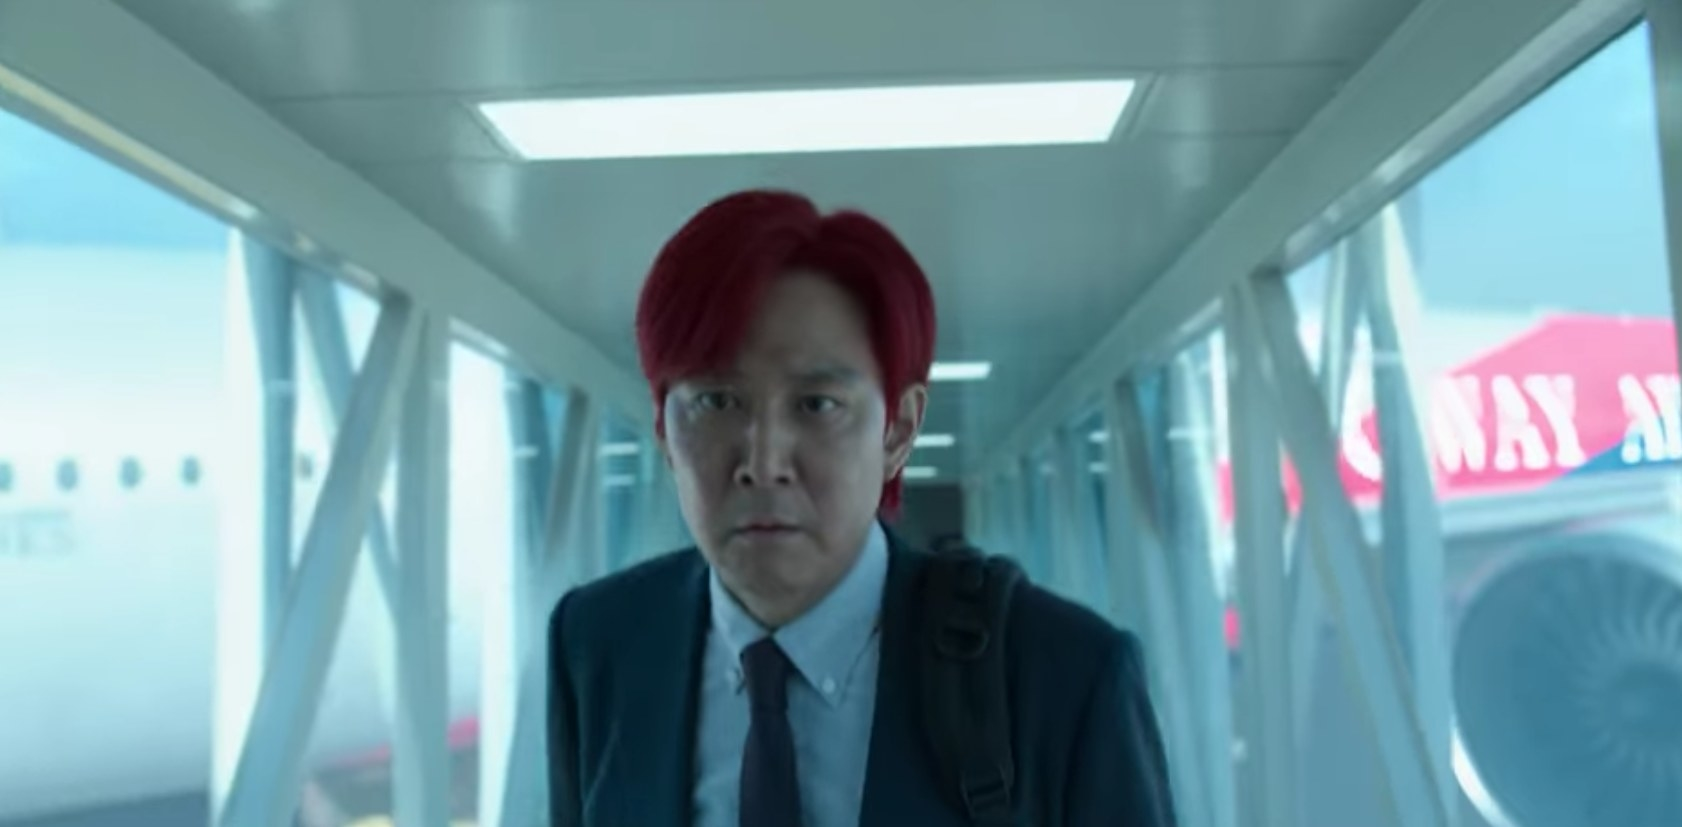 A red-haired Gi-hun looks determined while walking up a tunnel away from an airplane